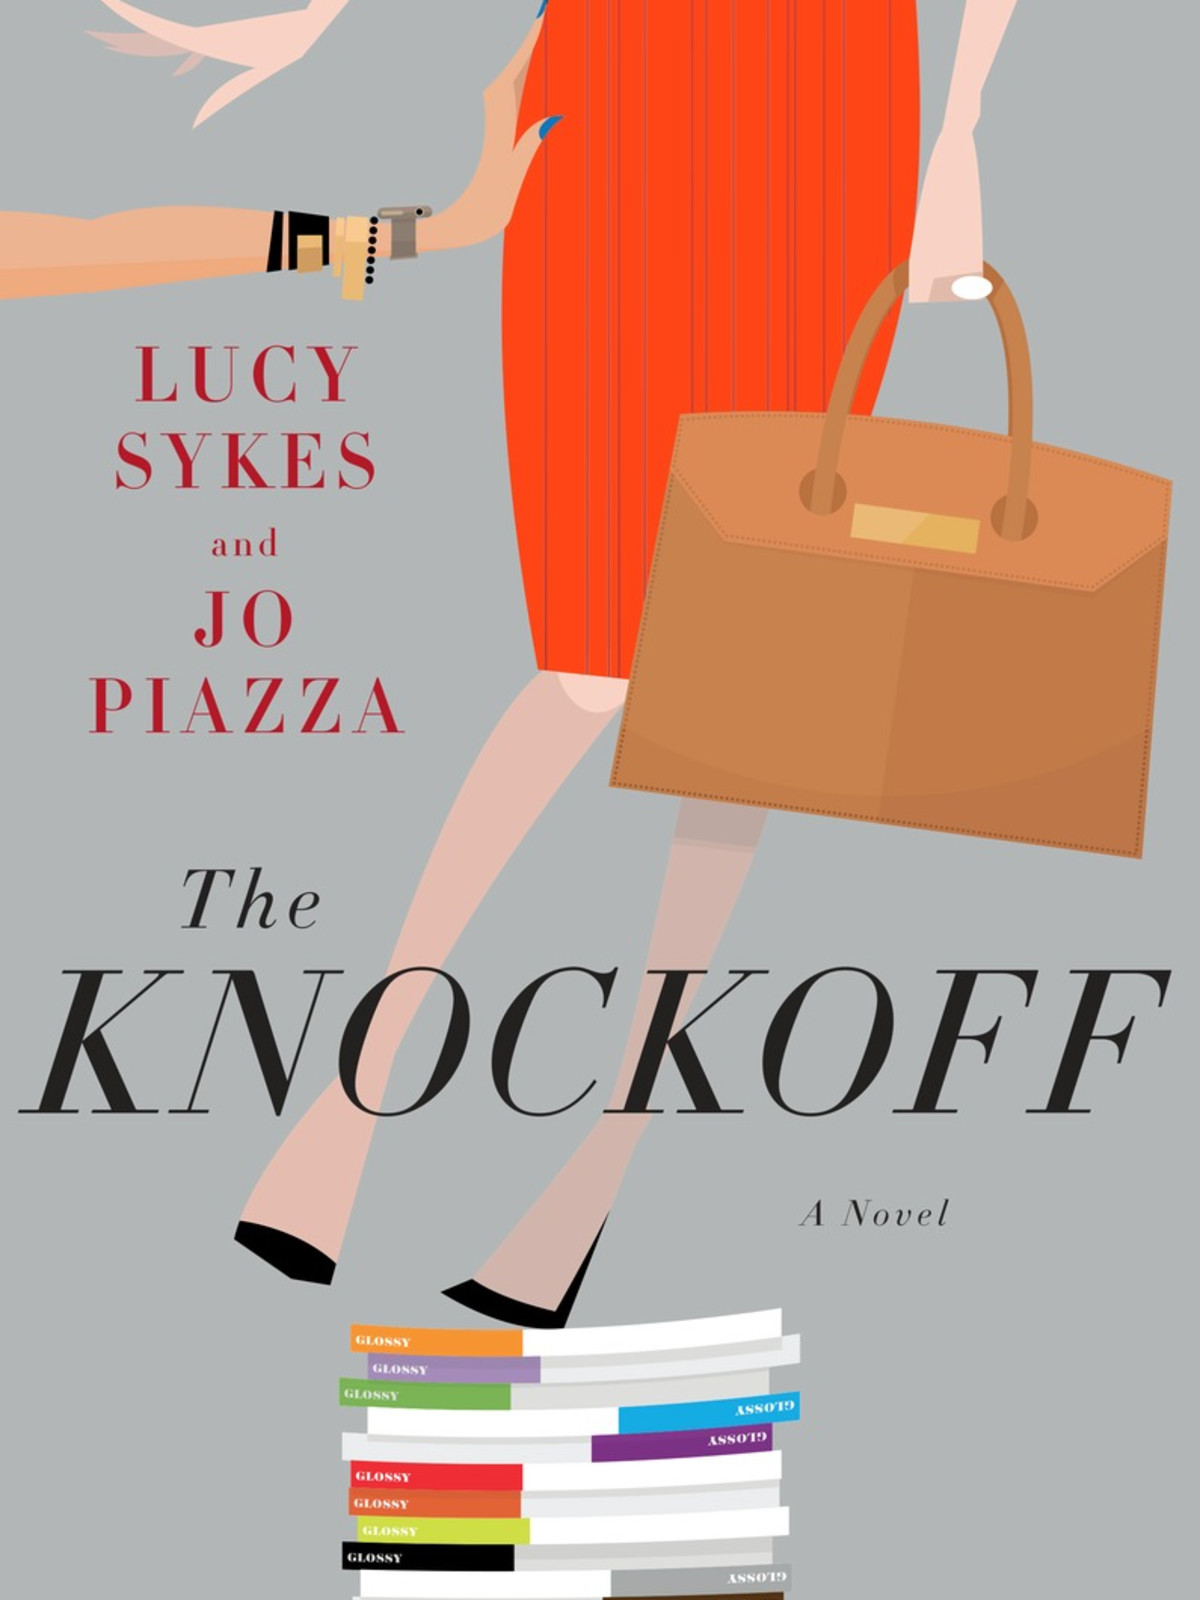 Lucy Sykes book The Knockoff